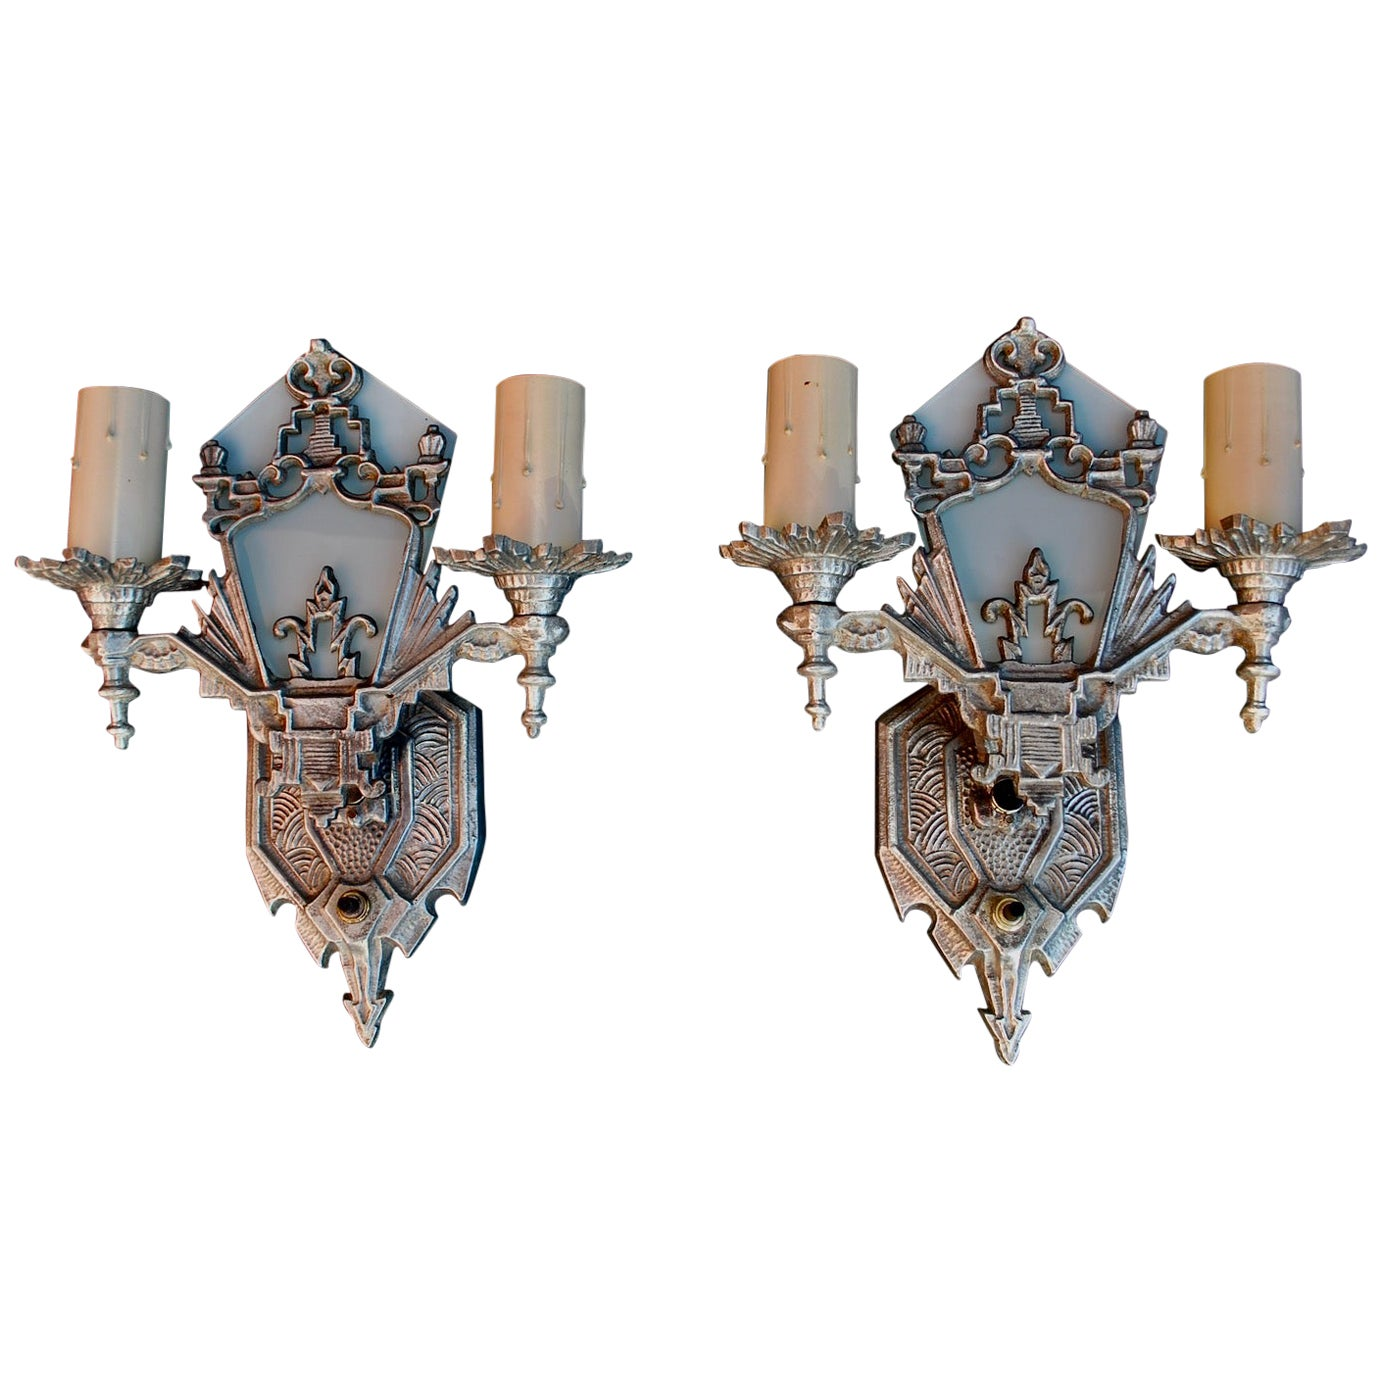 Beautiful Pair of Art Deco Sconces